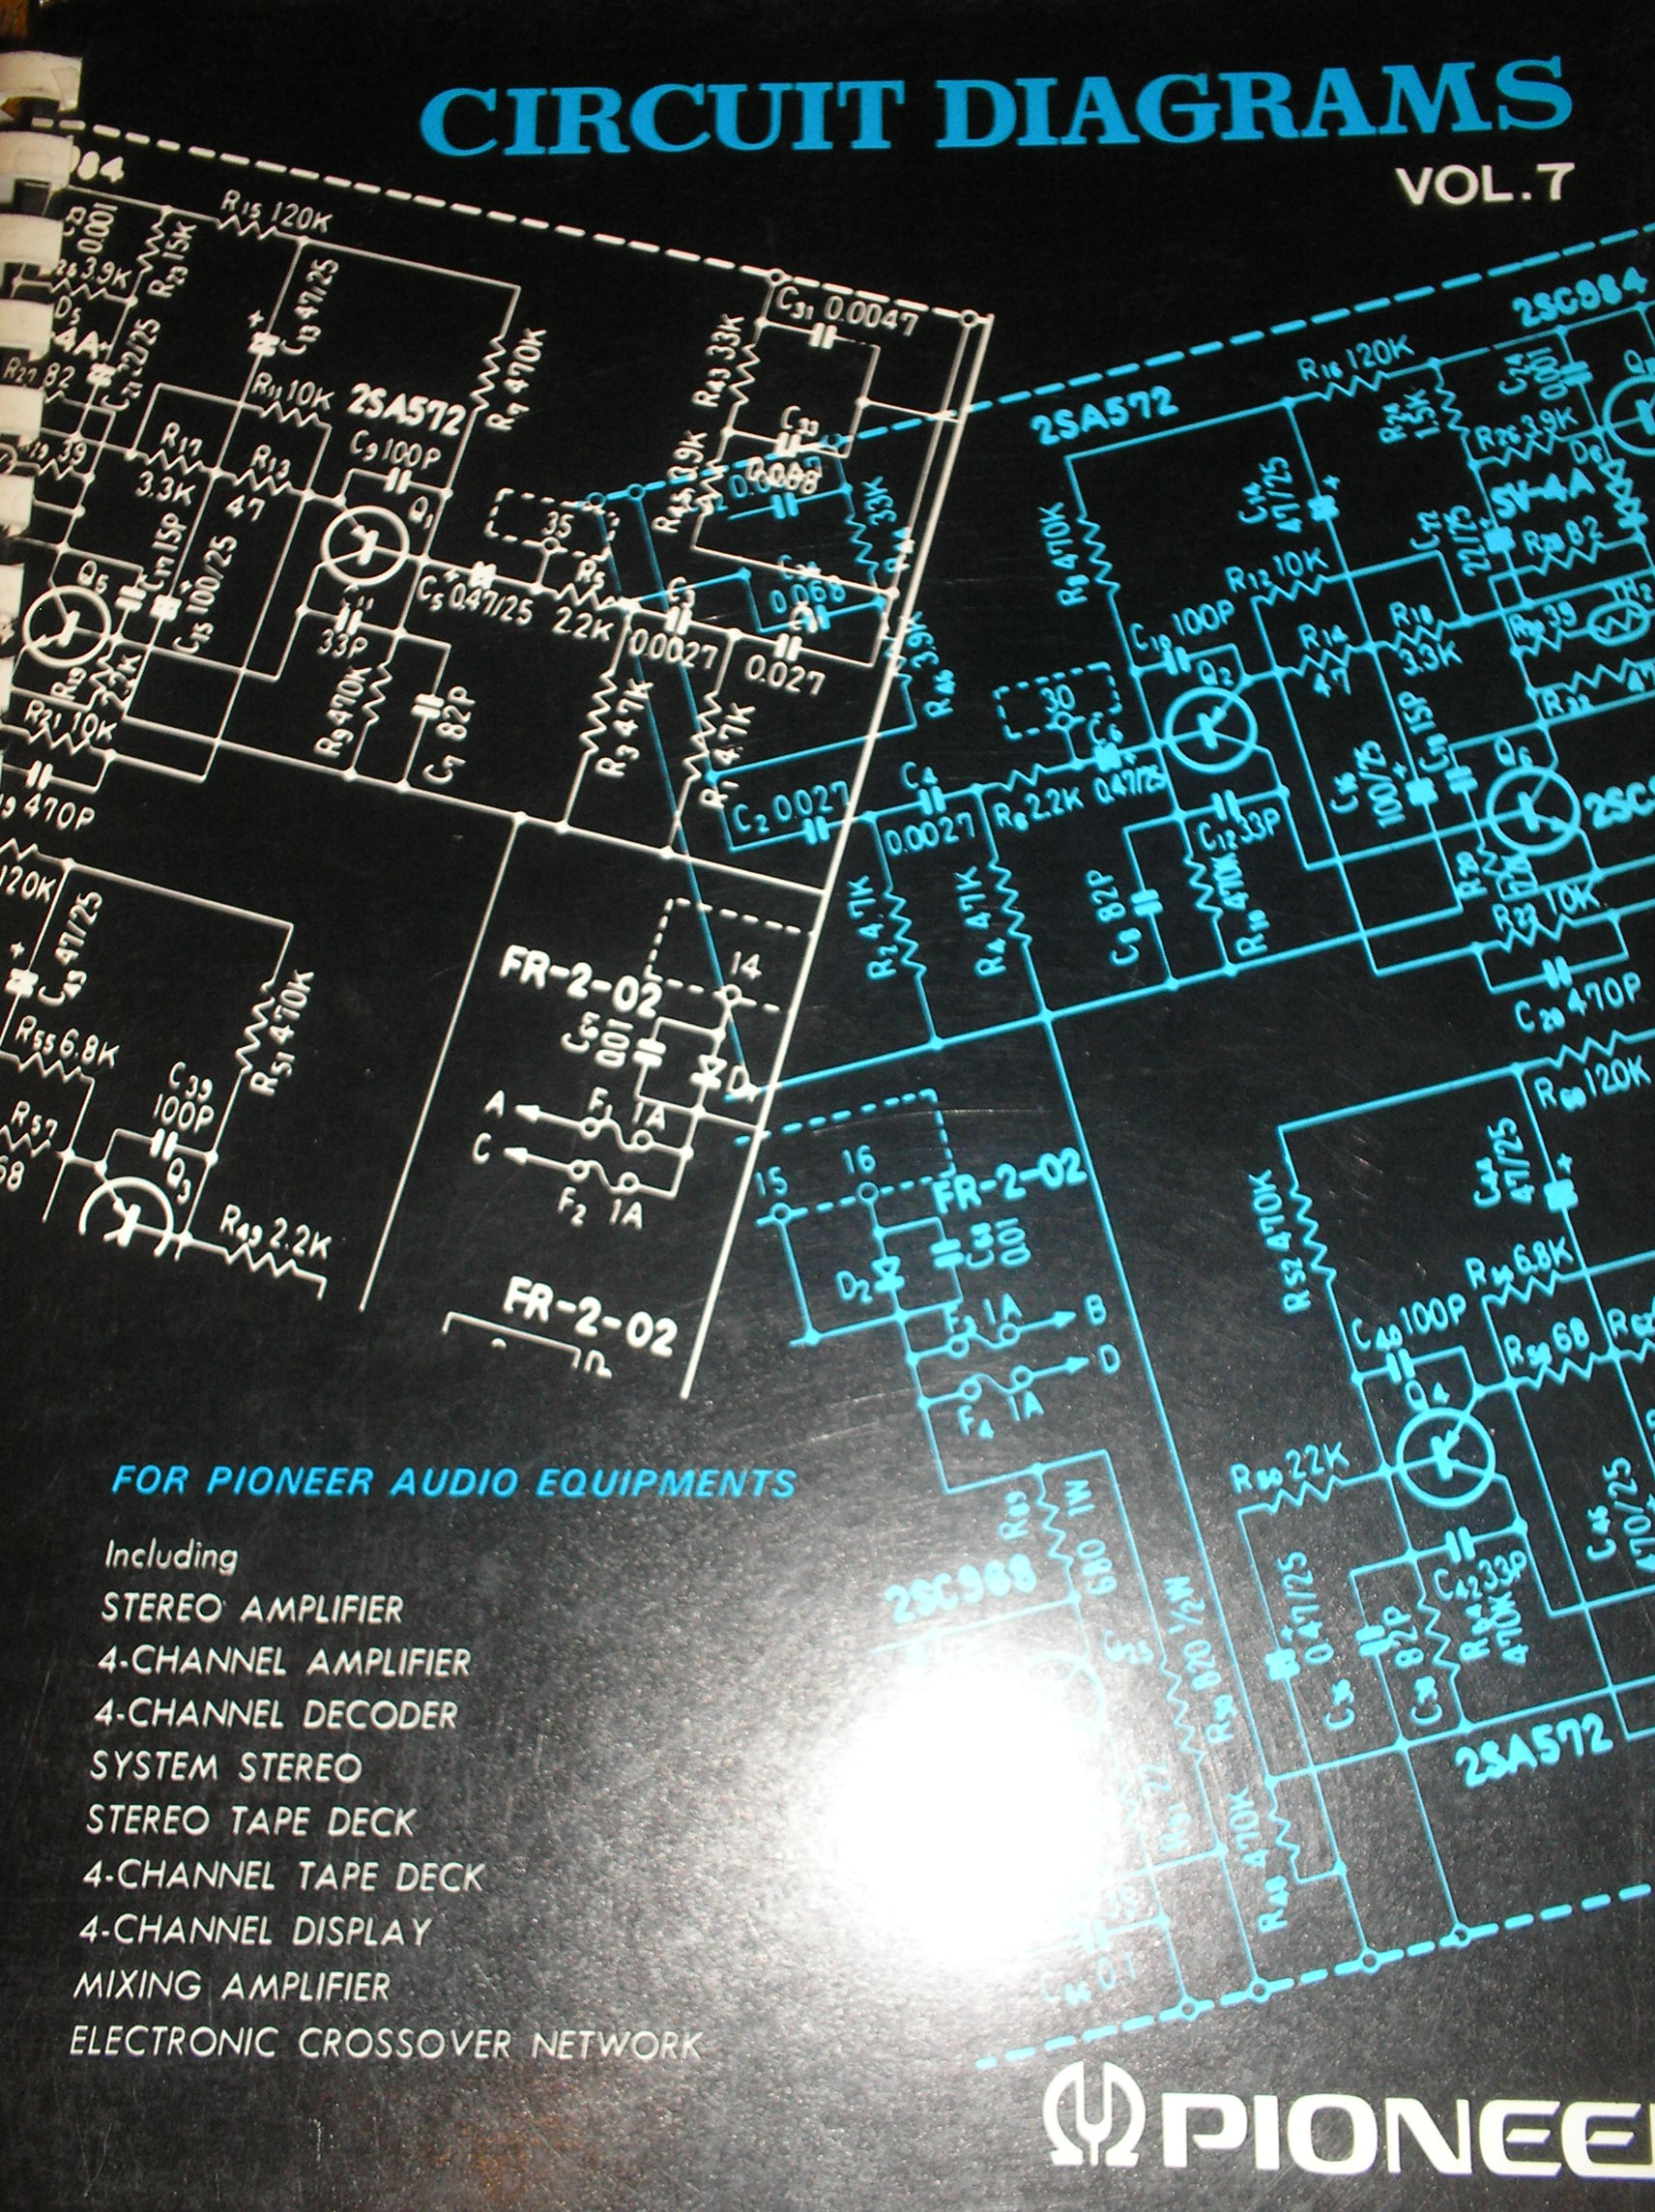 3000 Rondo Stereo System fold out schematics.   Book 7